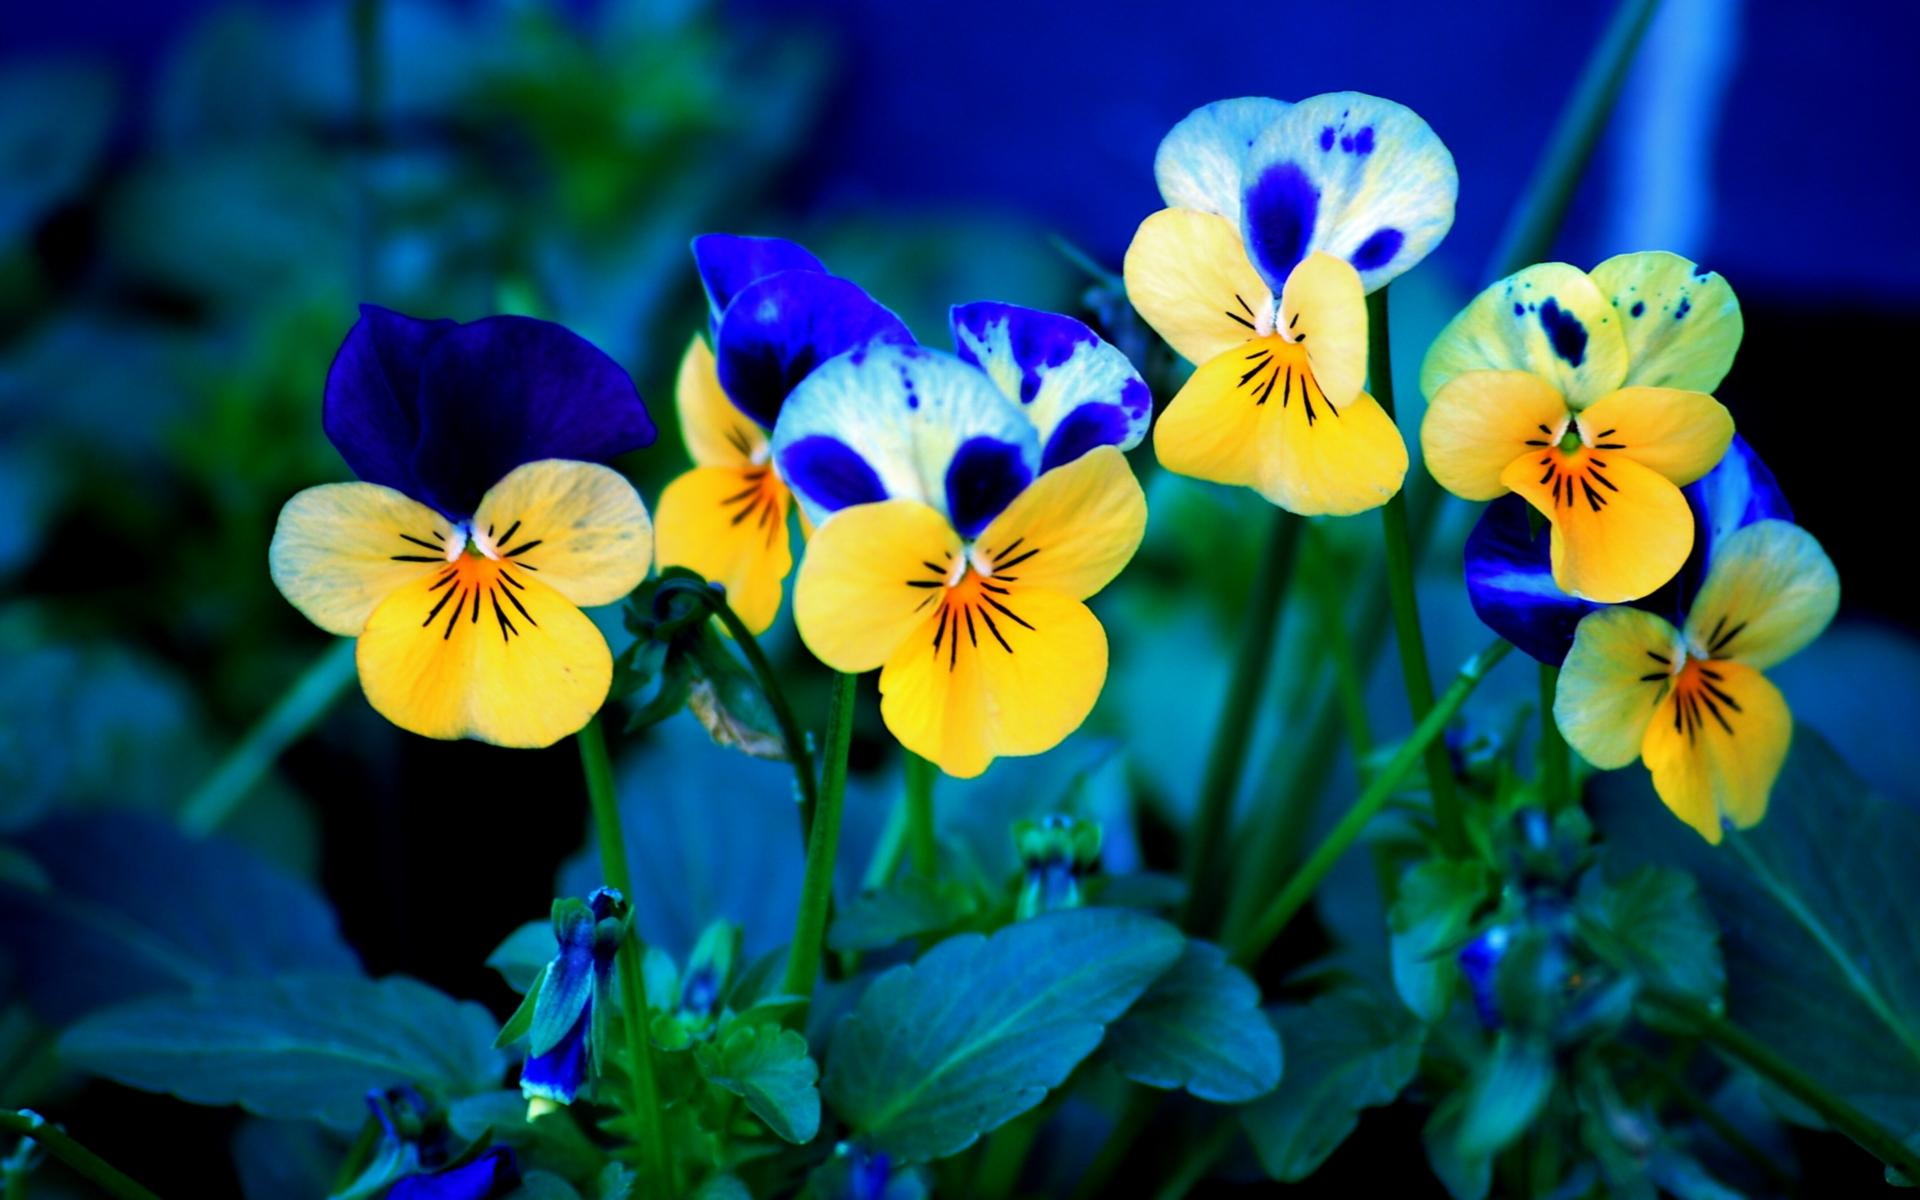 pansy flowers wallpaper 50011